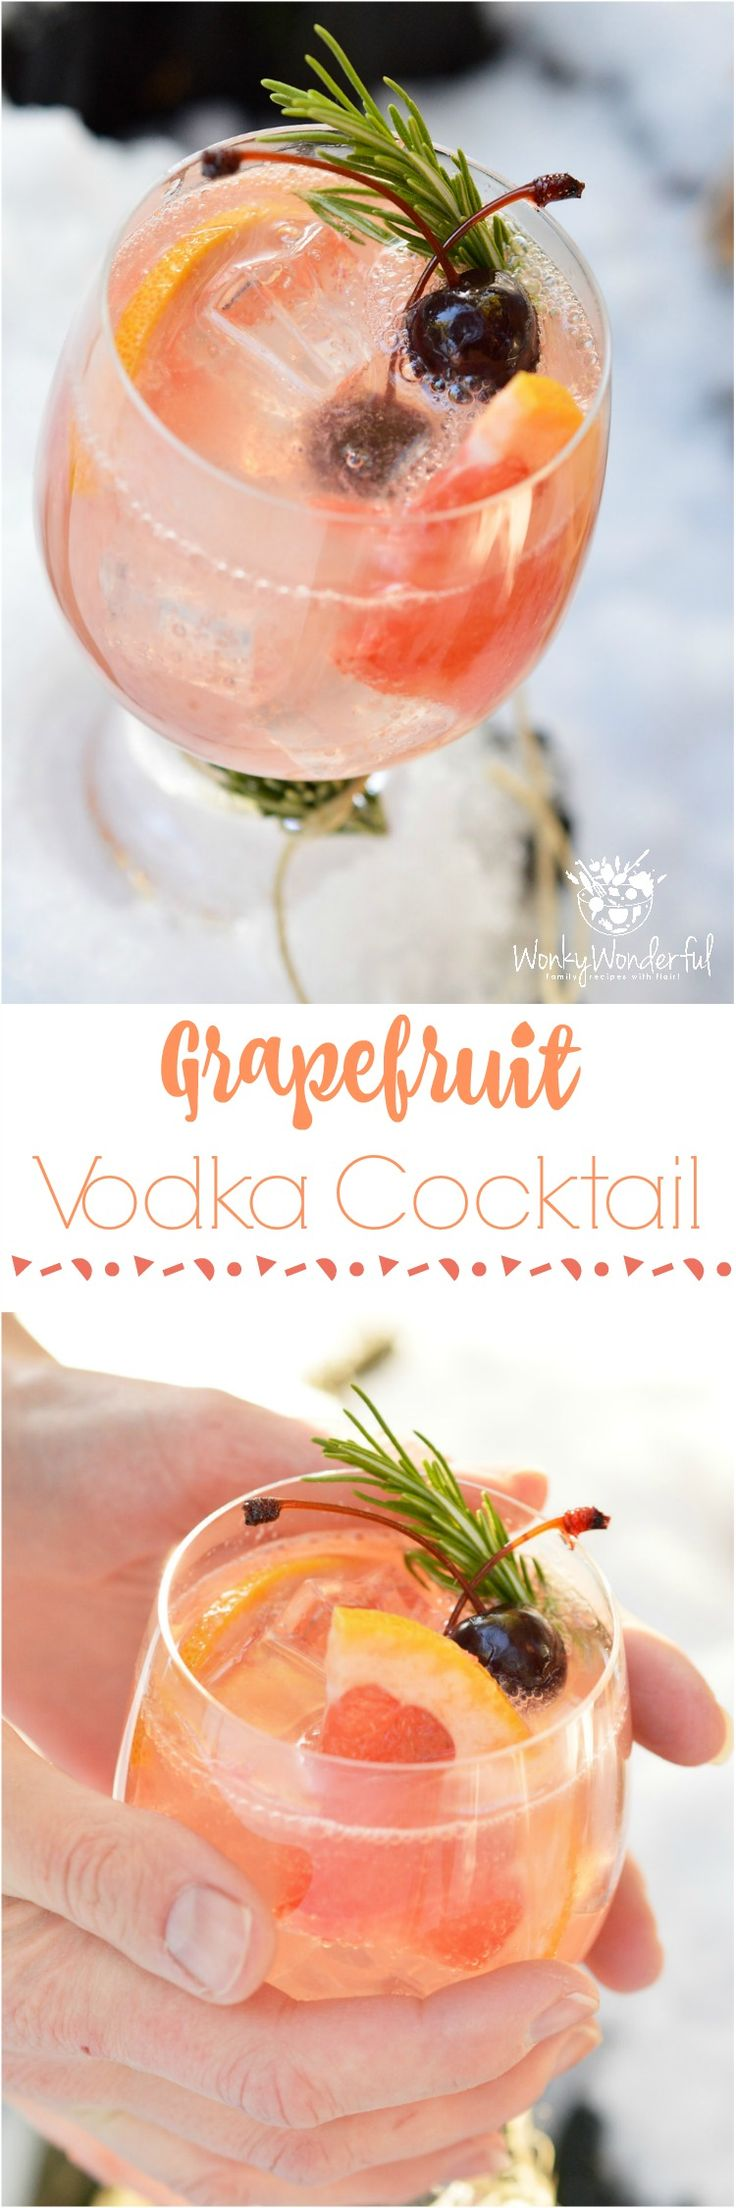 Celebrate snow days with this Grapefruit Vodka Cocktail recipe. This winter cocktail is bold, refreshing and perfect for a snowy picnic!